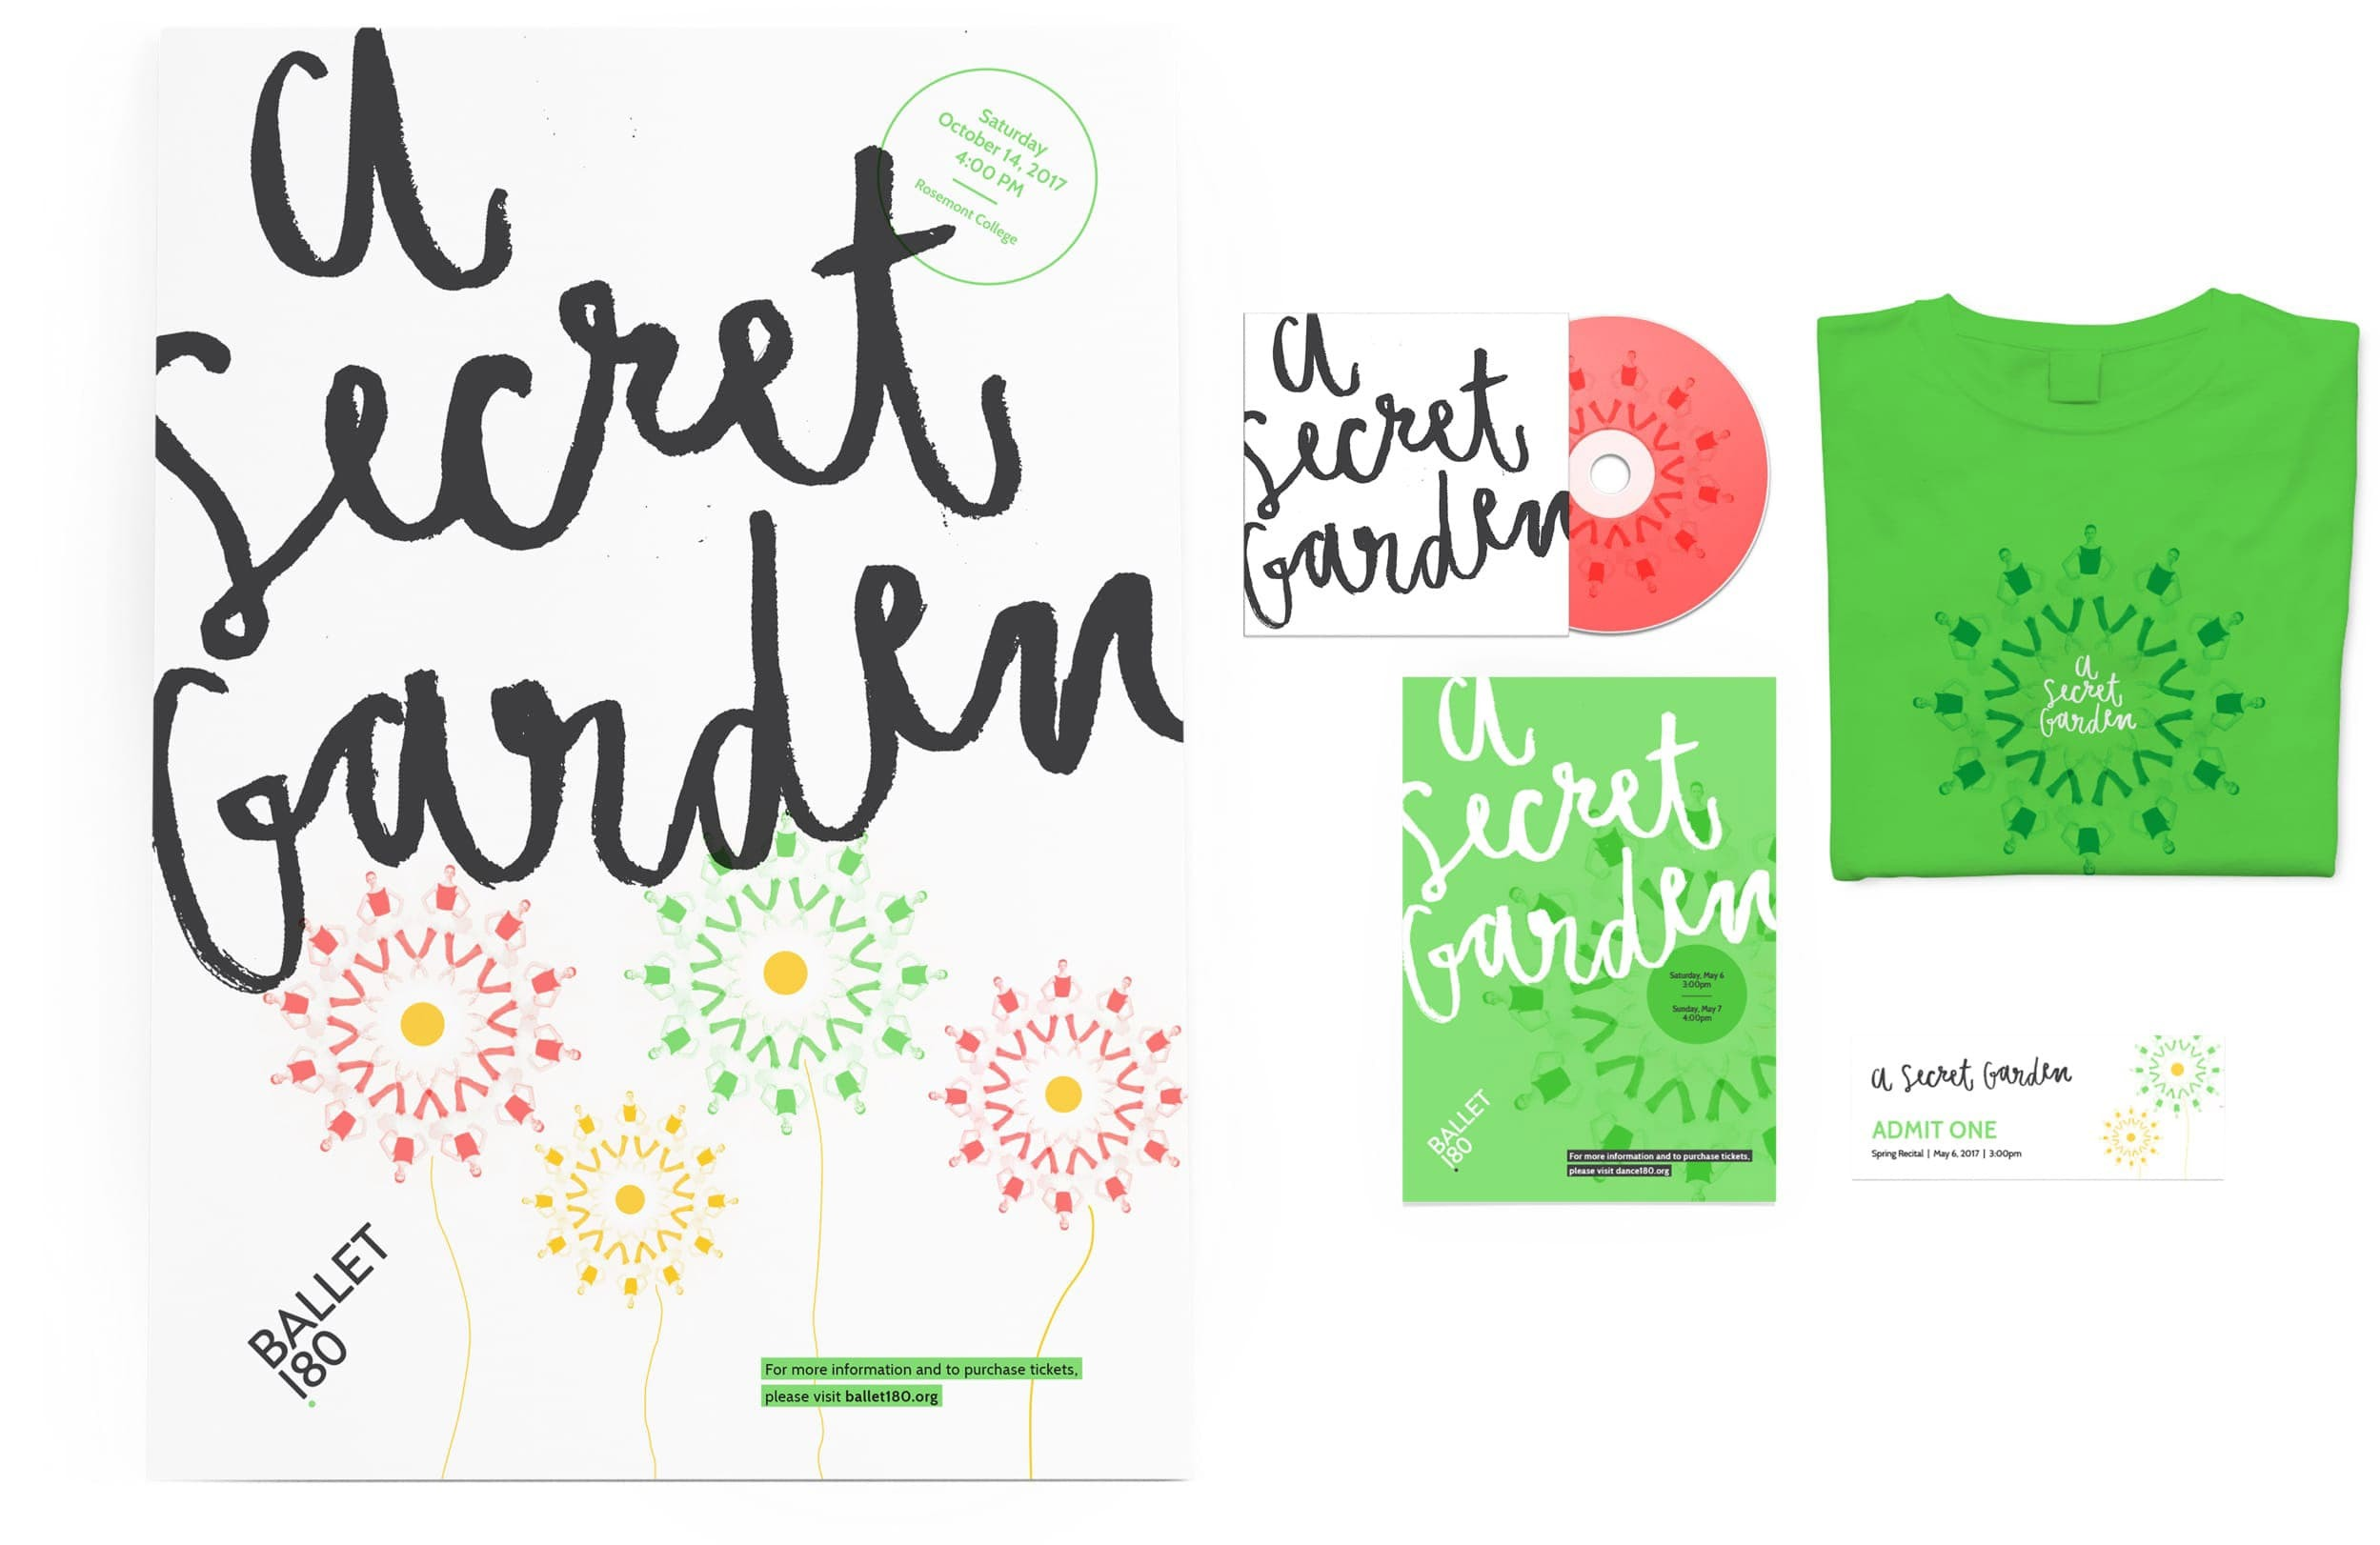 Ballet 180 Secret Garden Event Collateral